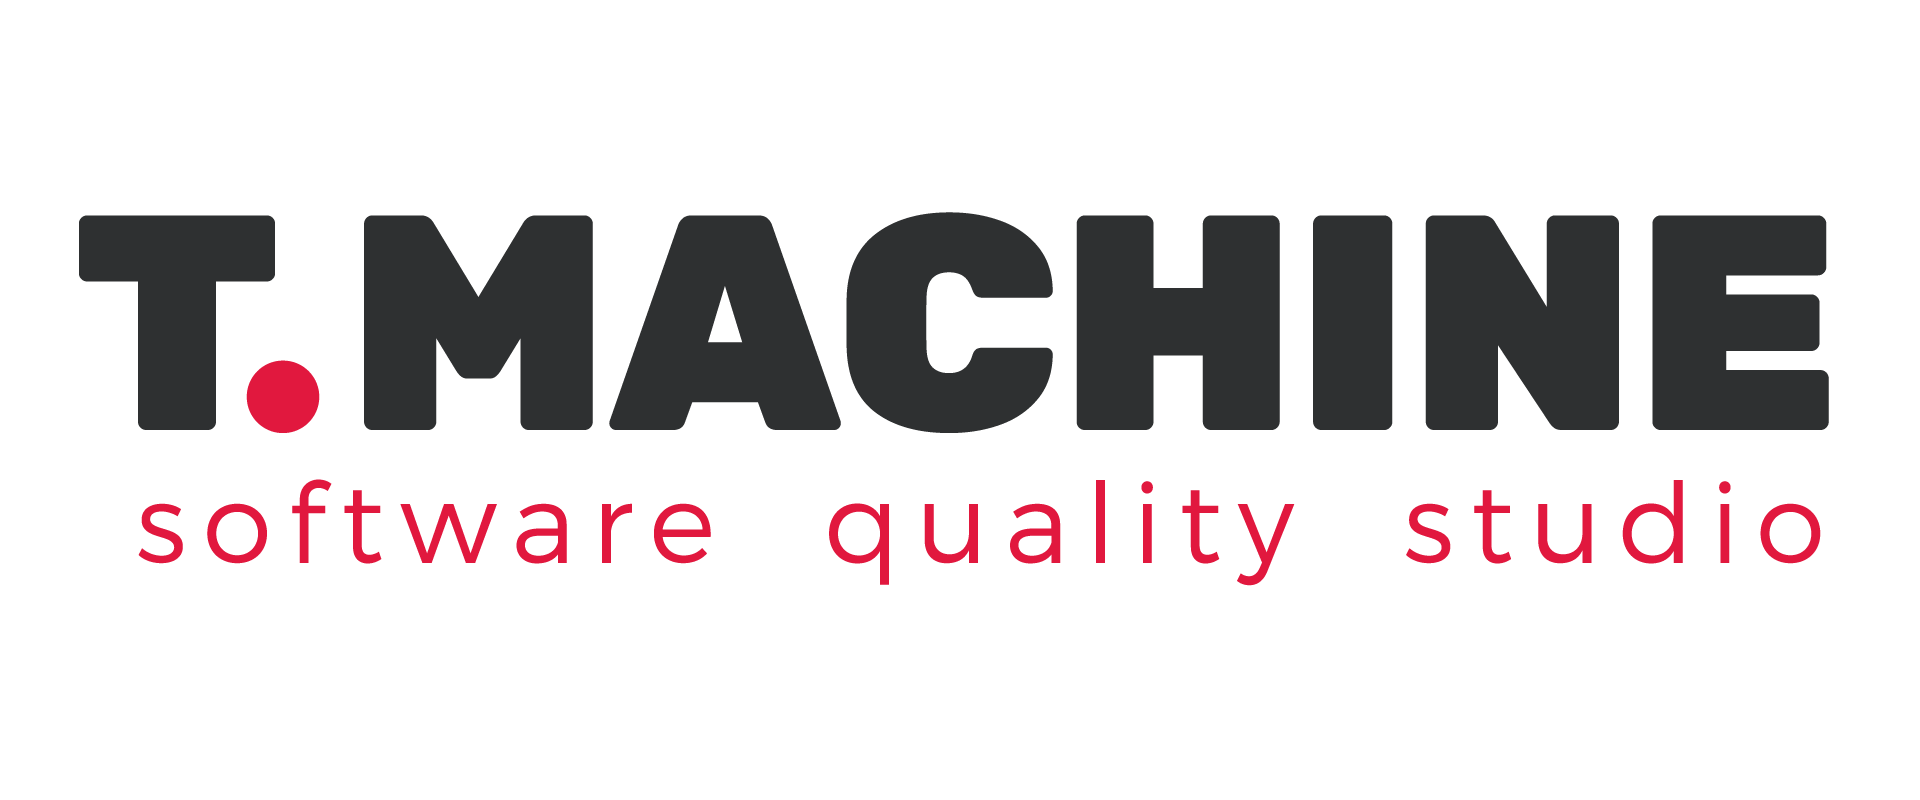 T-MACHINE-1-logo